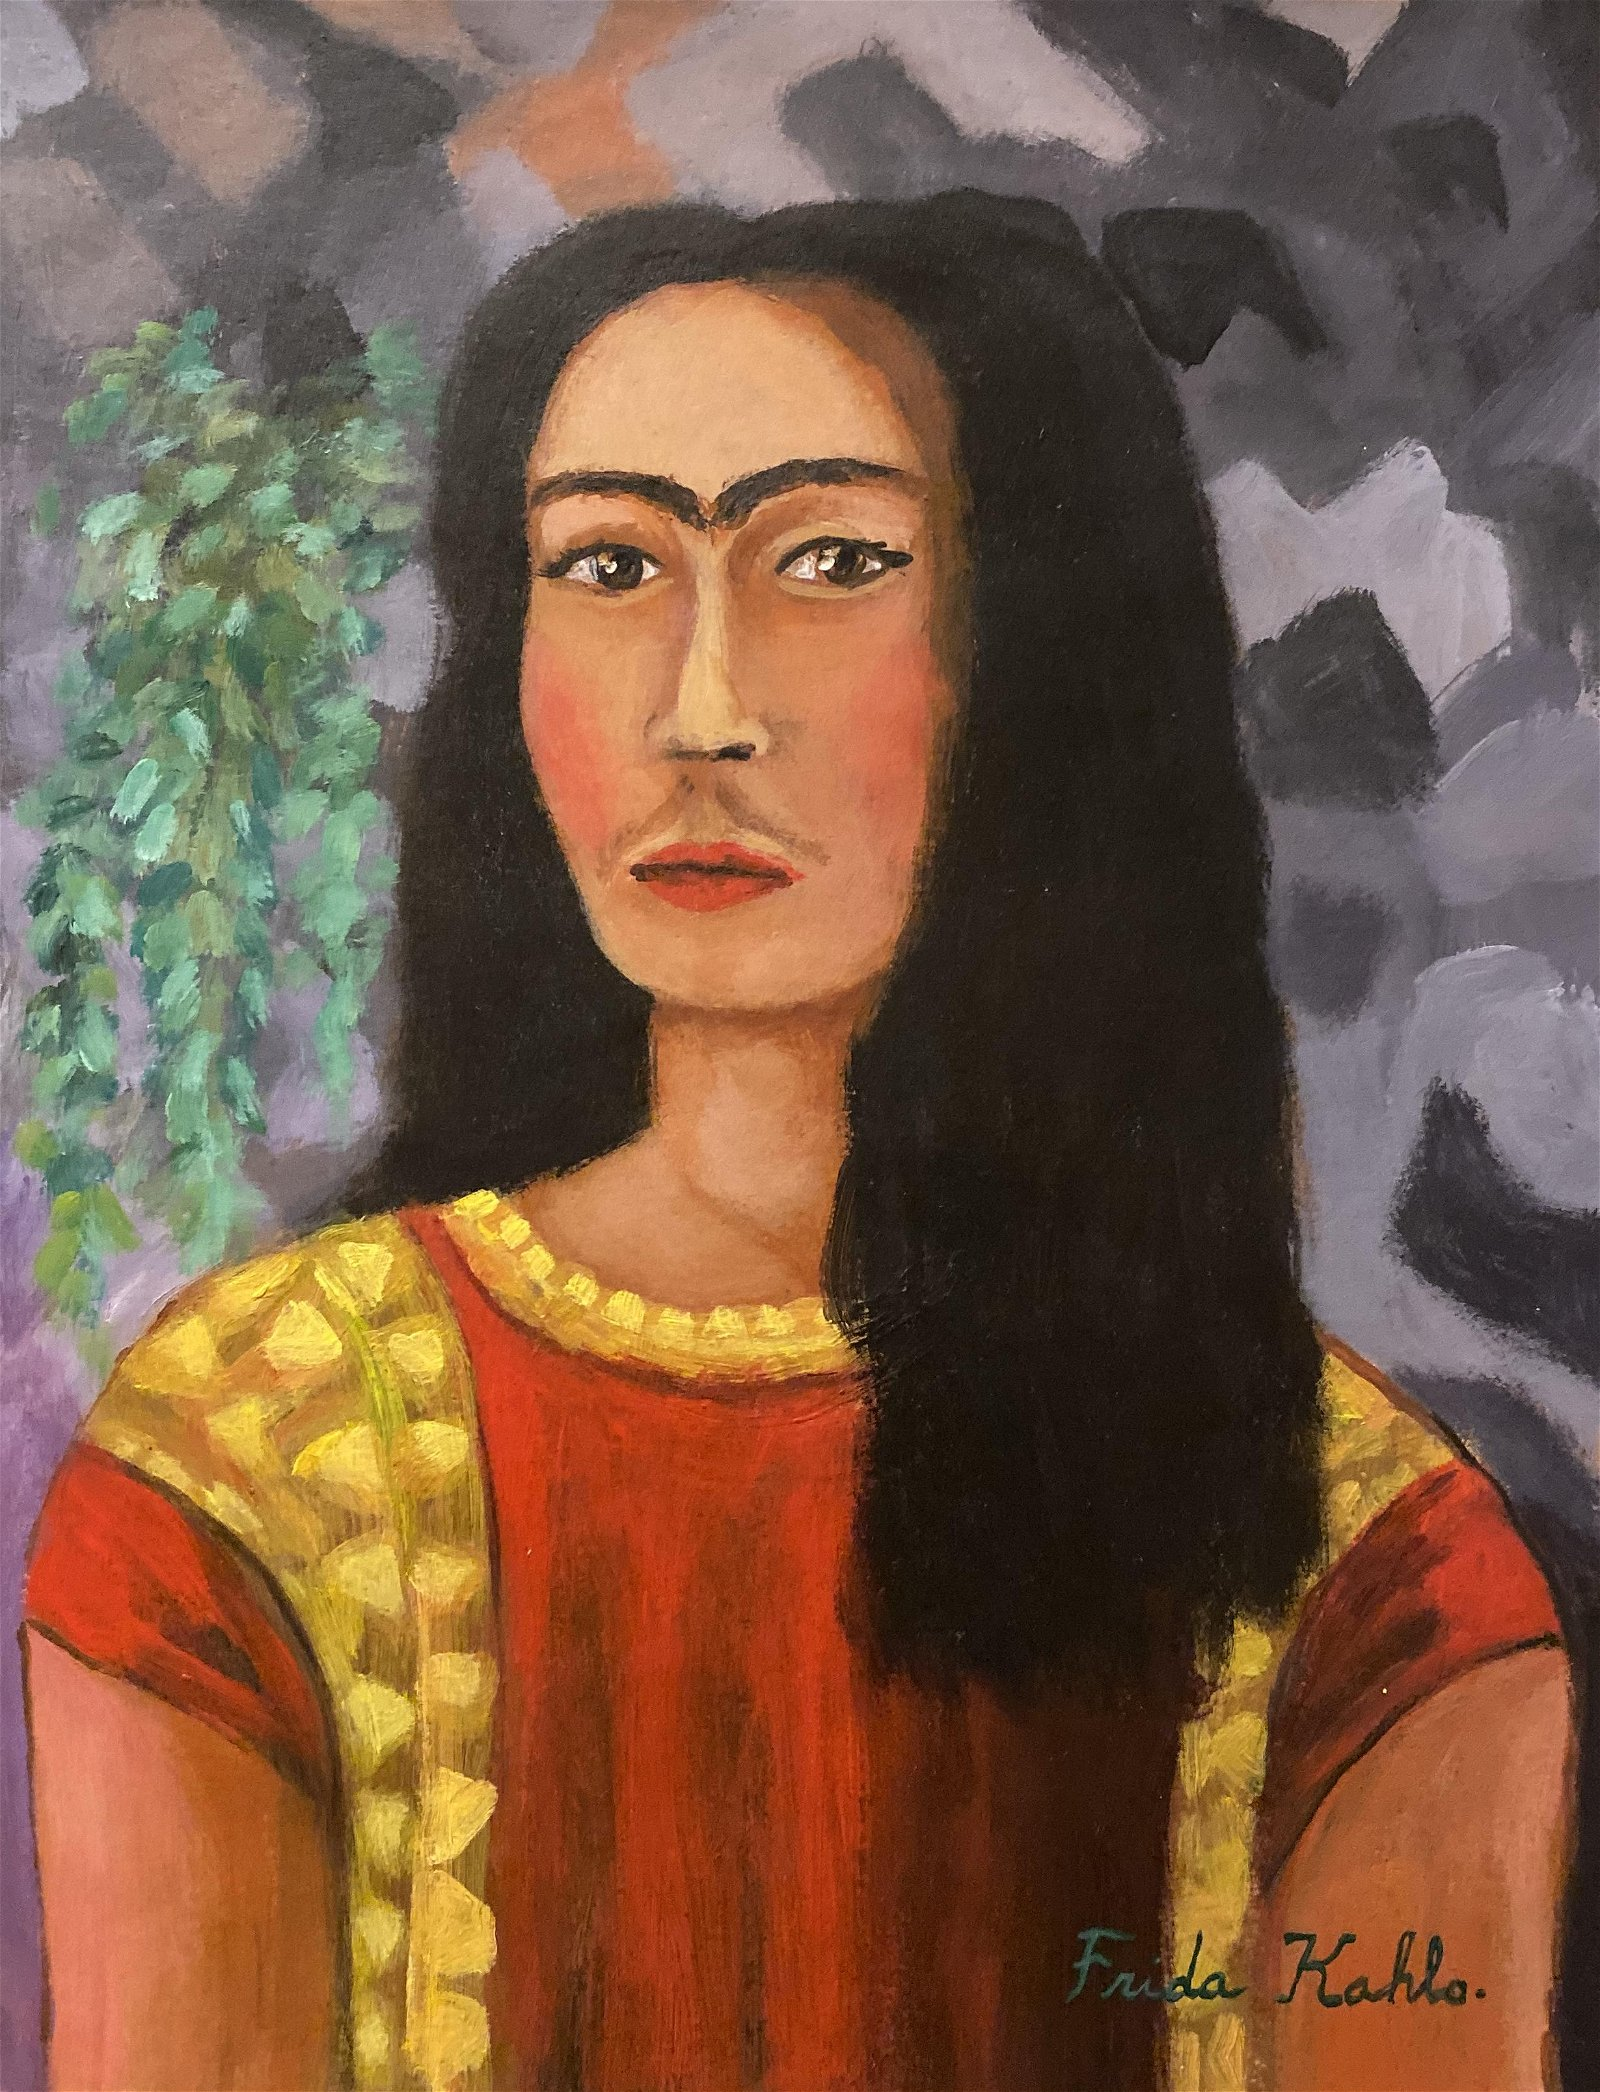 Frida Kahlo hand painted Mexican Art 1907-1950